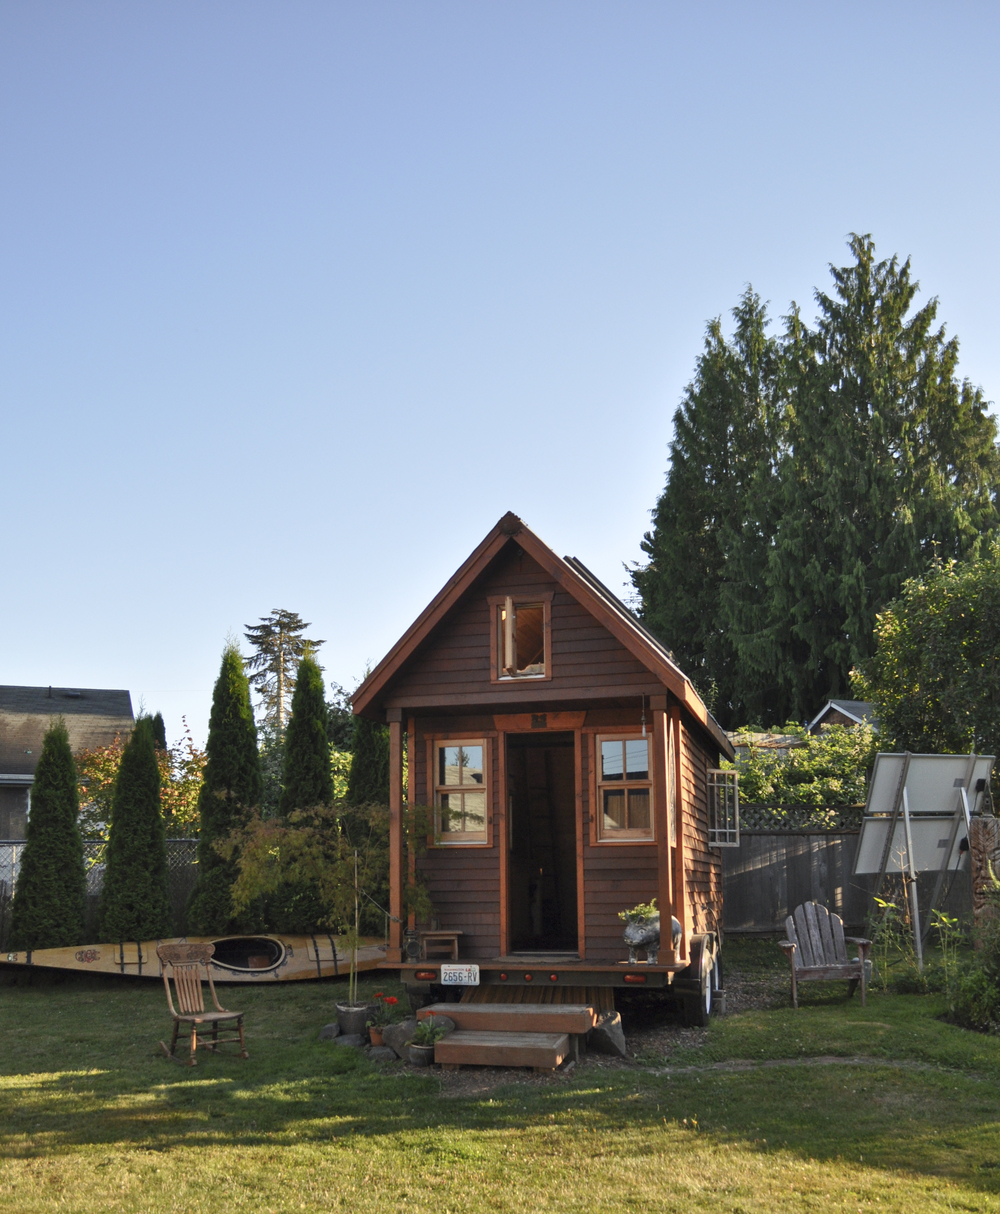 Tiny Houses Articles on art article, tiny homes, tiny houses in arizona, tiny houses az, internet article, food article,